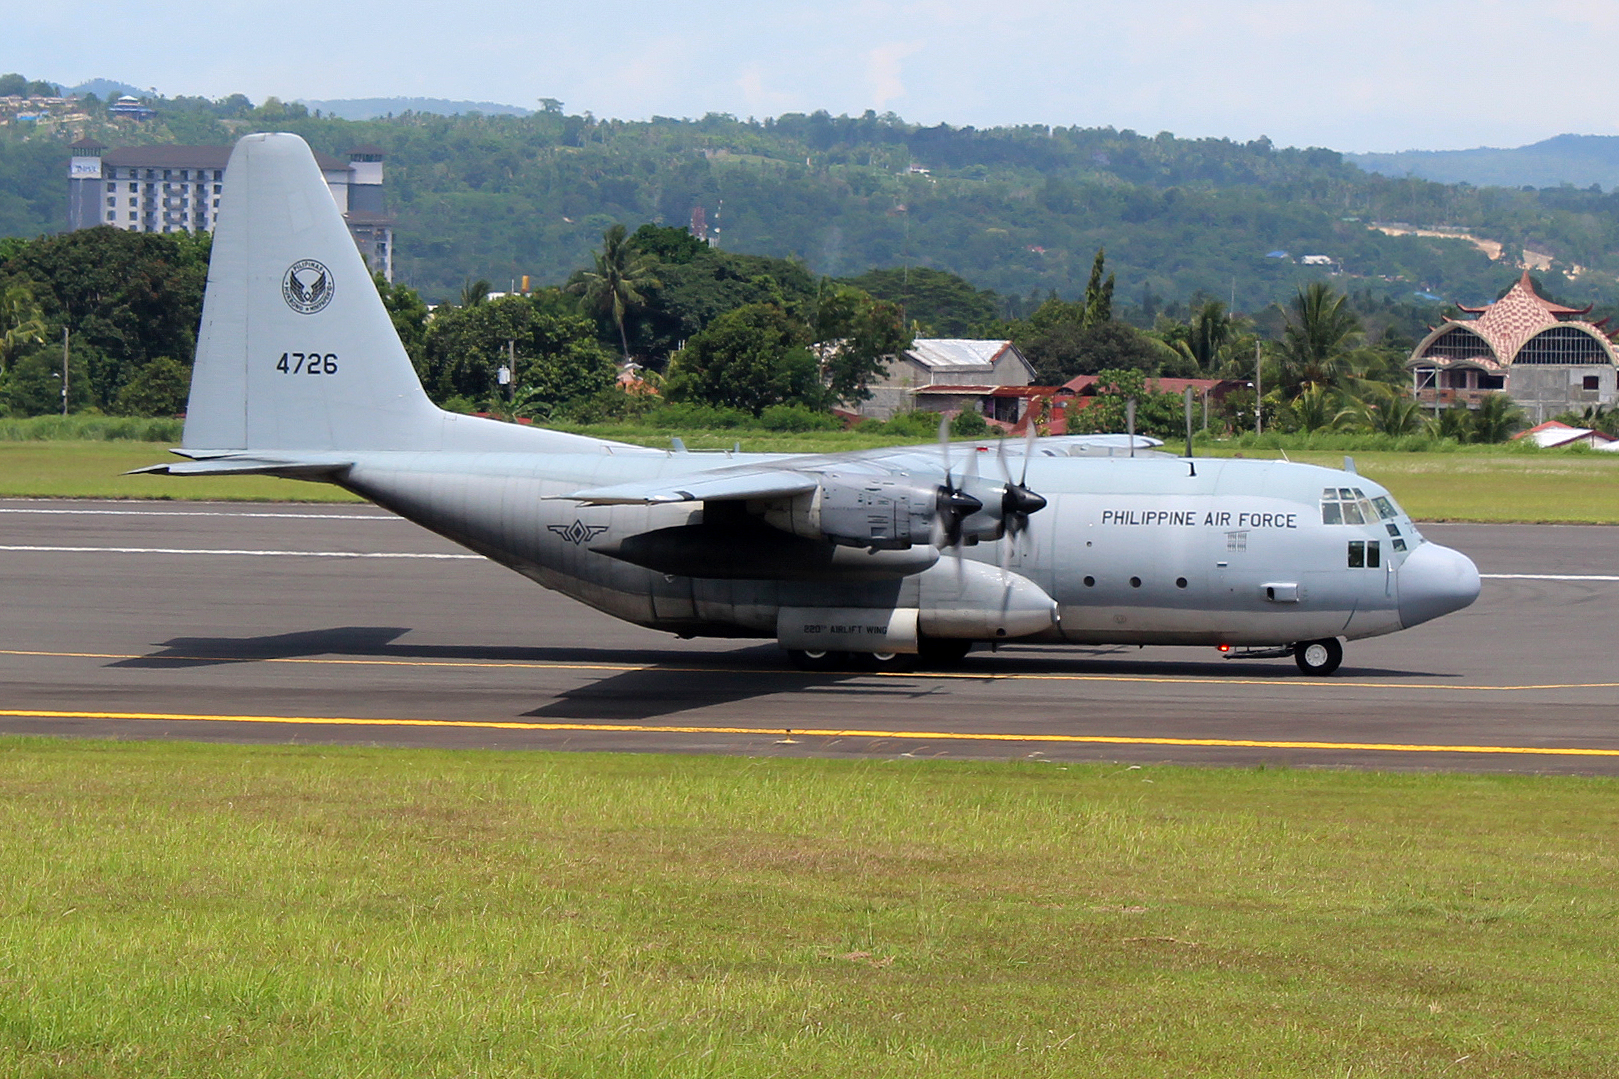 Philippine Air Force C-130